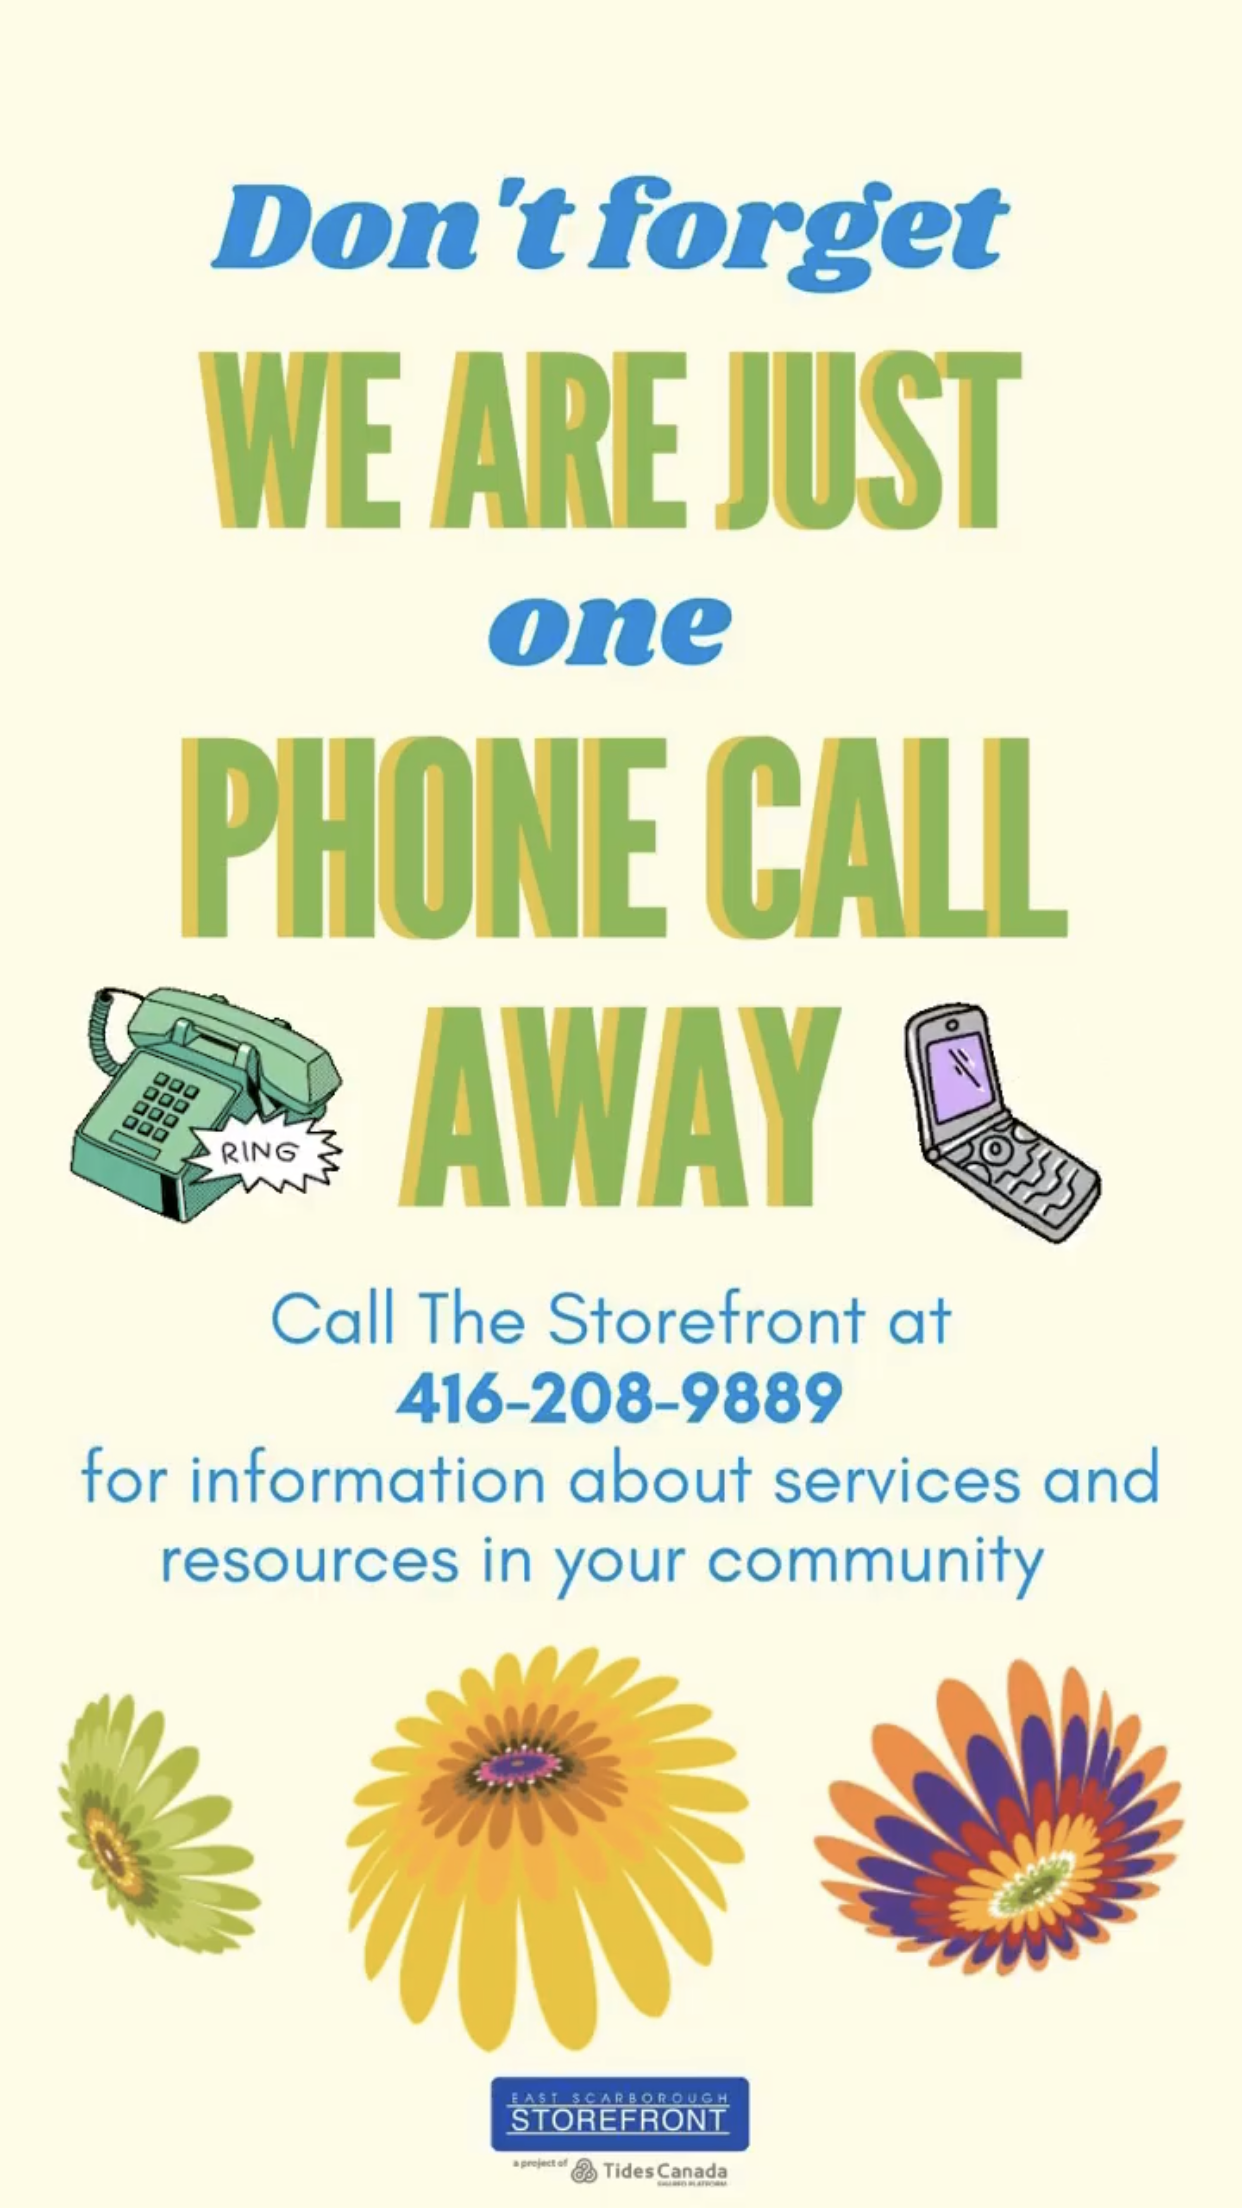 The Storefront is one phone call away at 416-208-9889